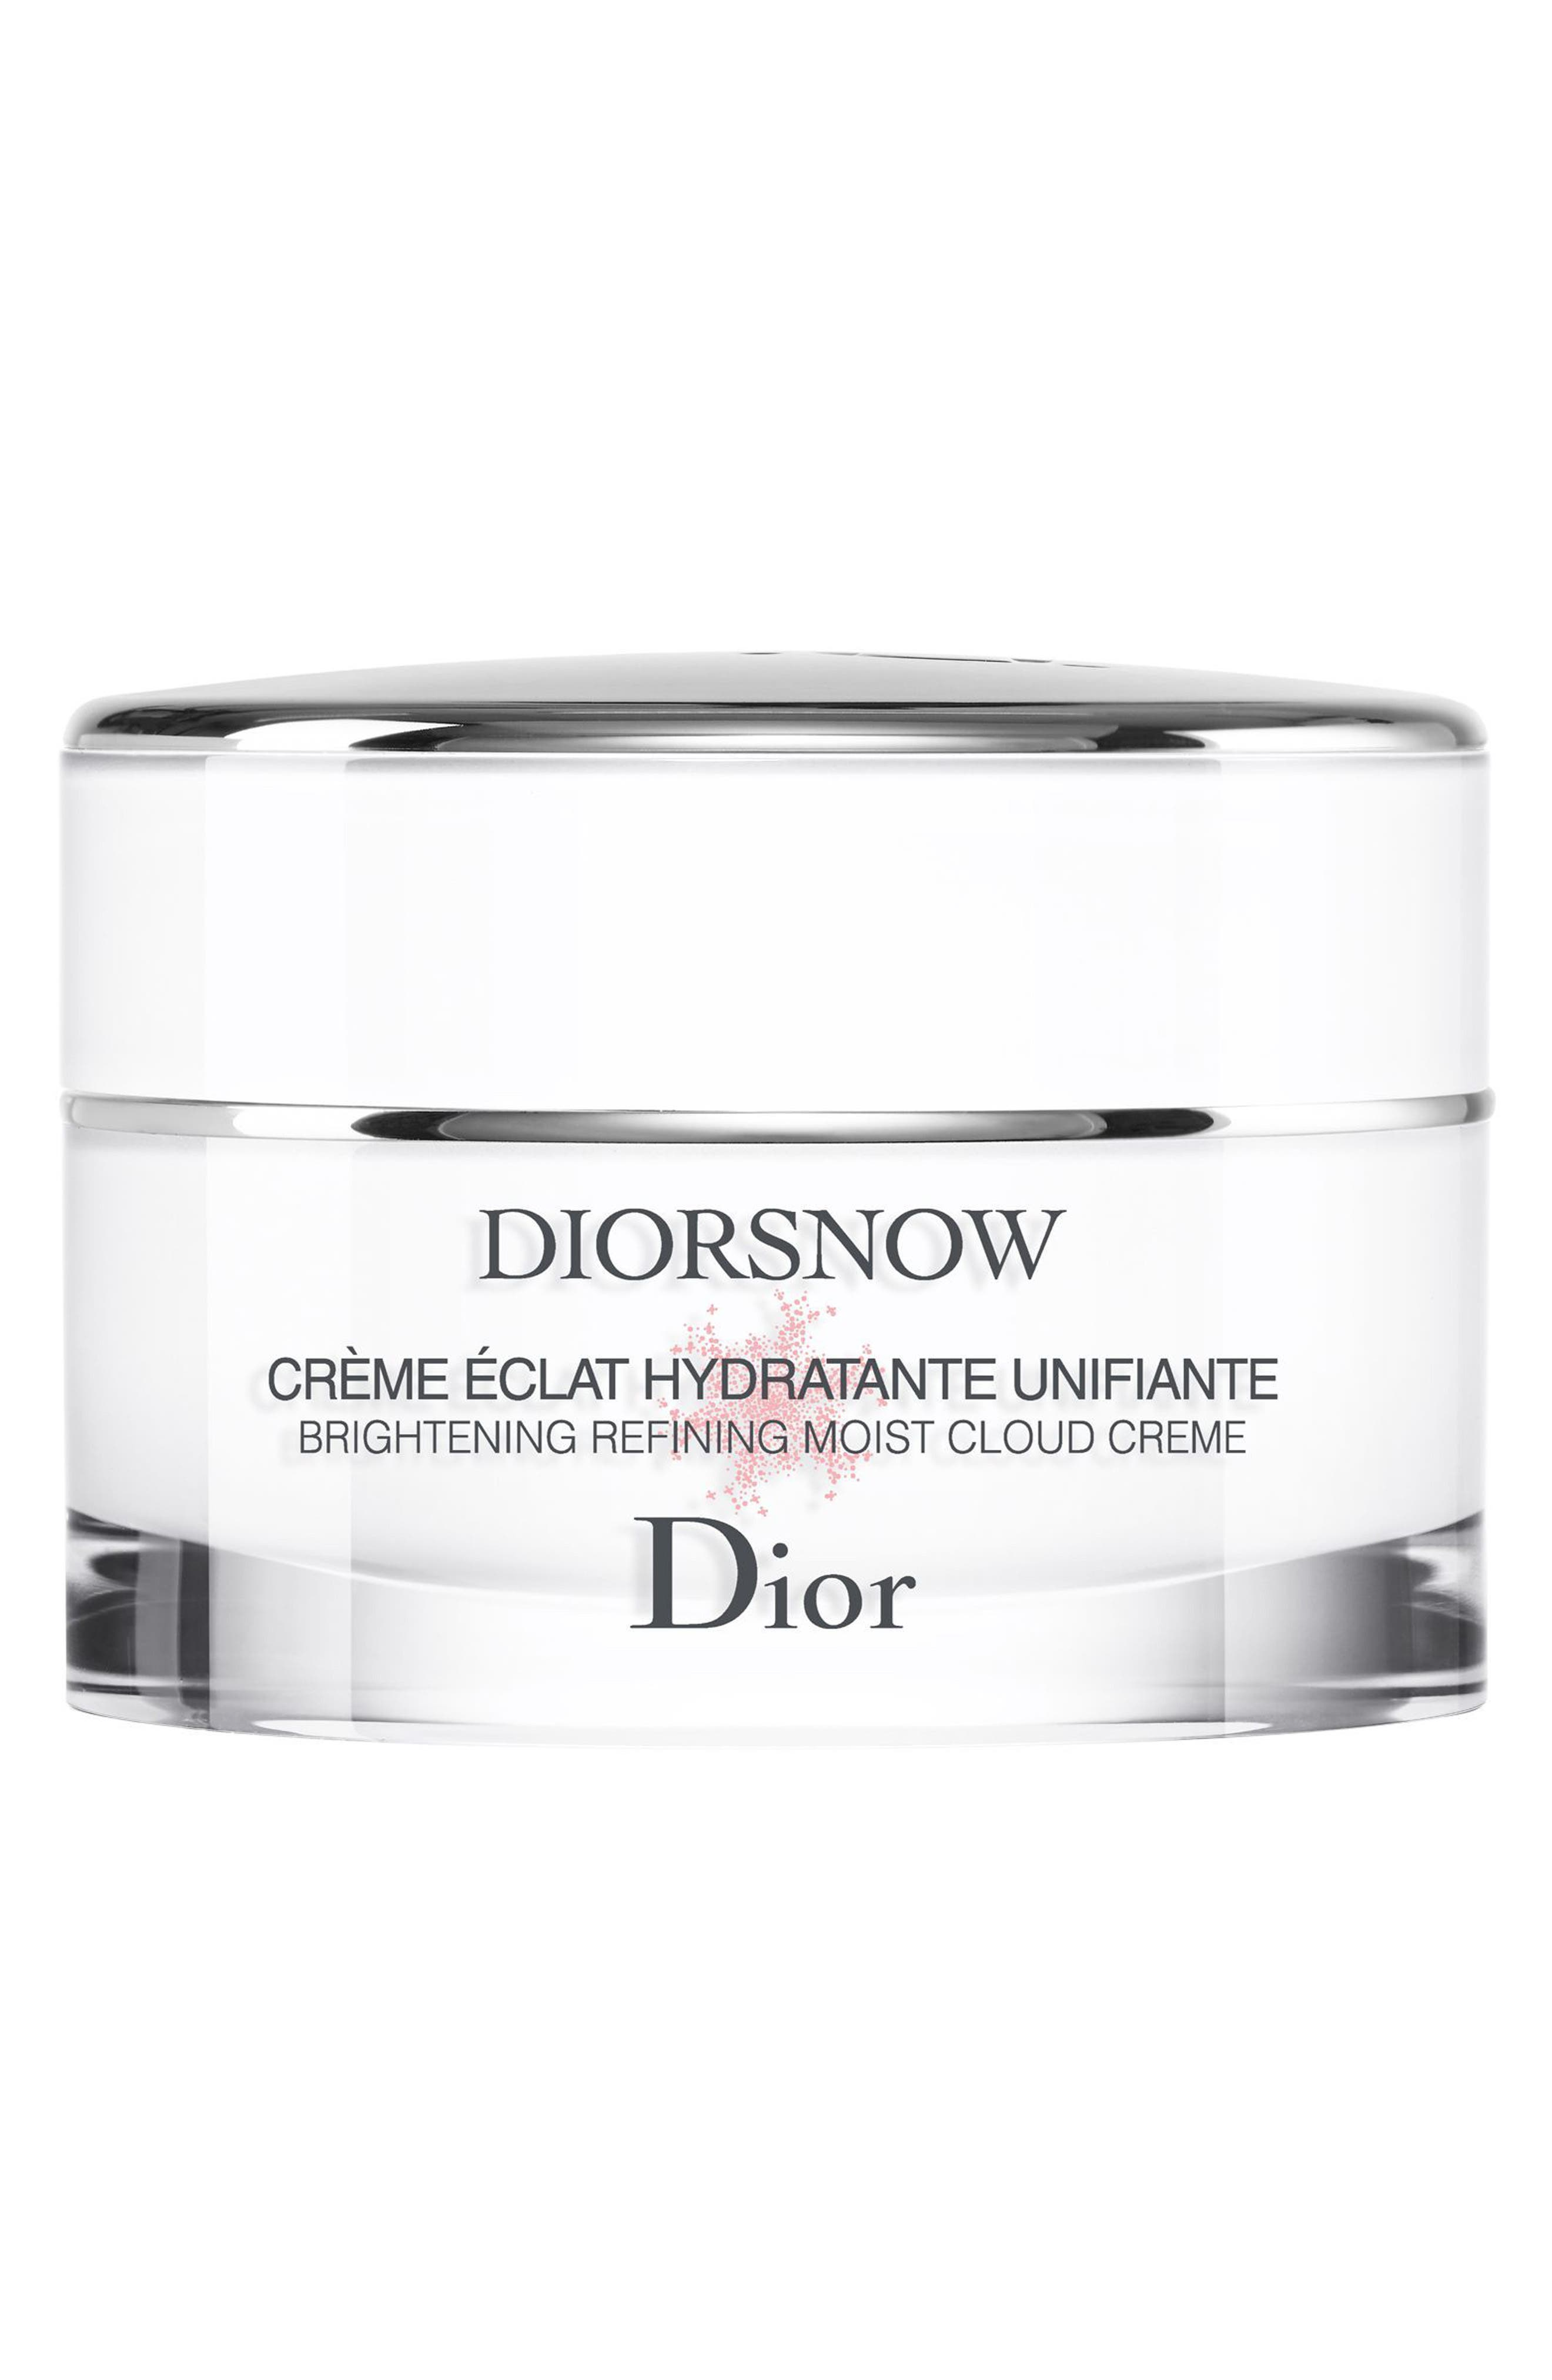 Diorsnow Brightening Refining Moist Cloud Crème,                             Main thumbnail 1, color,                             NO COLOR